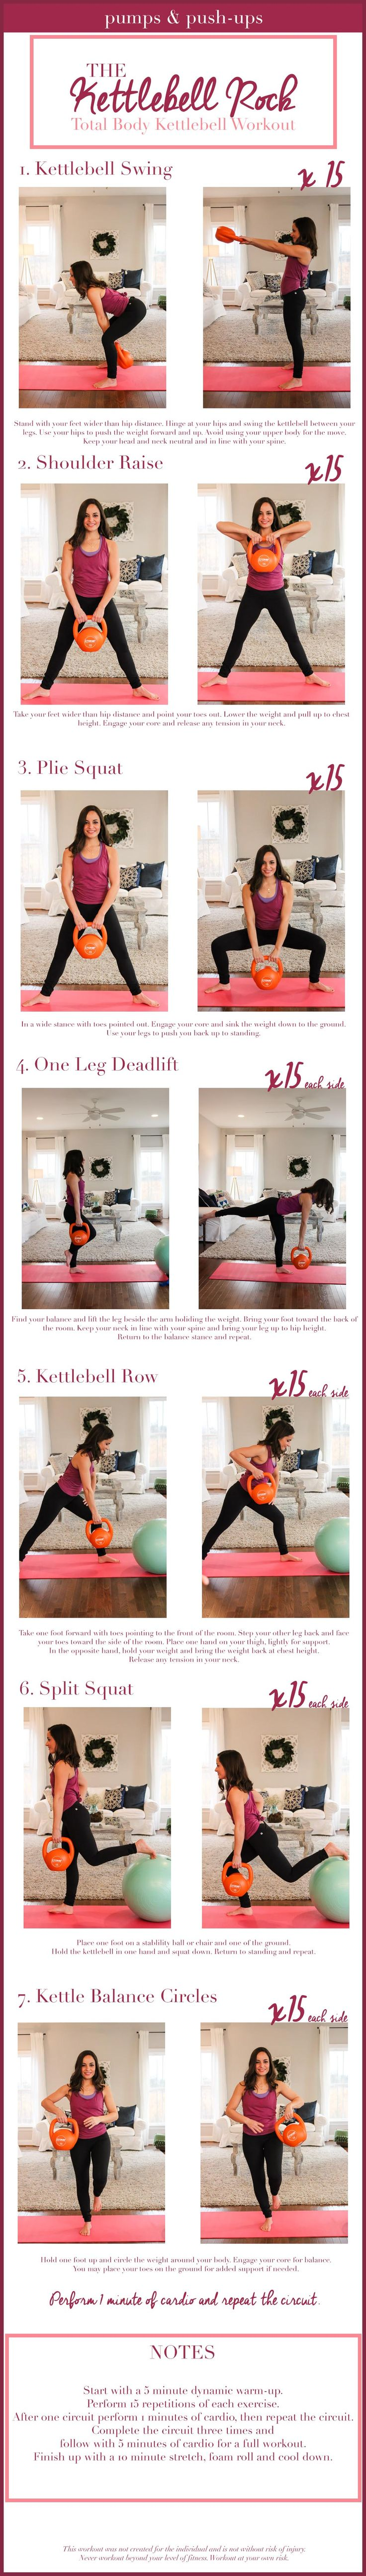 Kettlebell workout - at home workout using a stability ball and a kettlebell